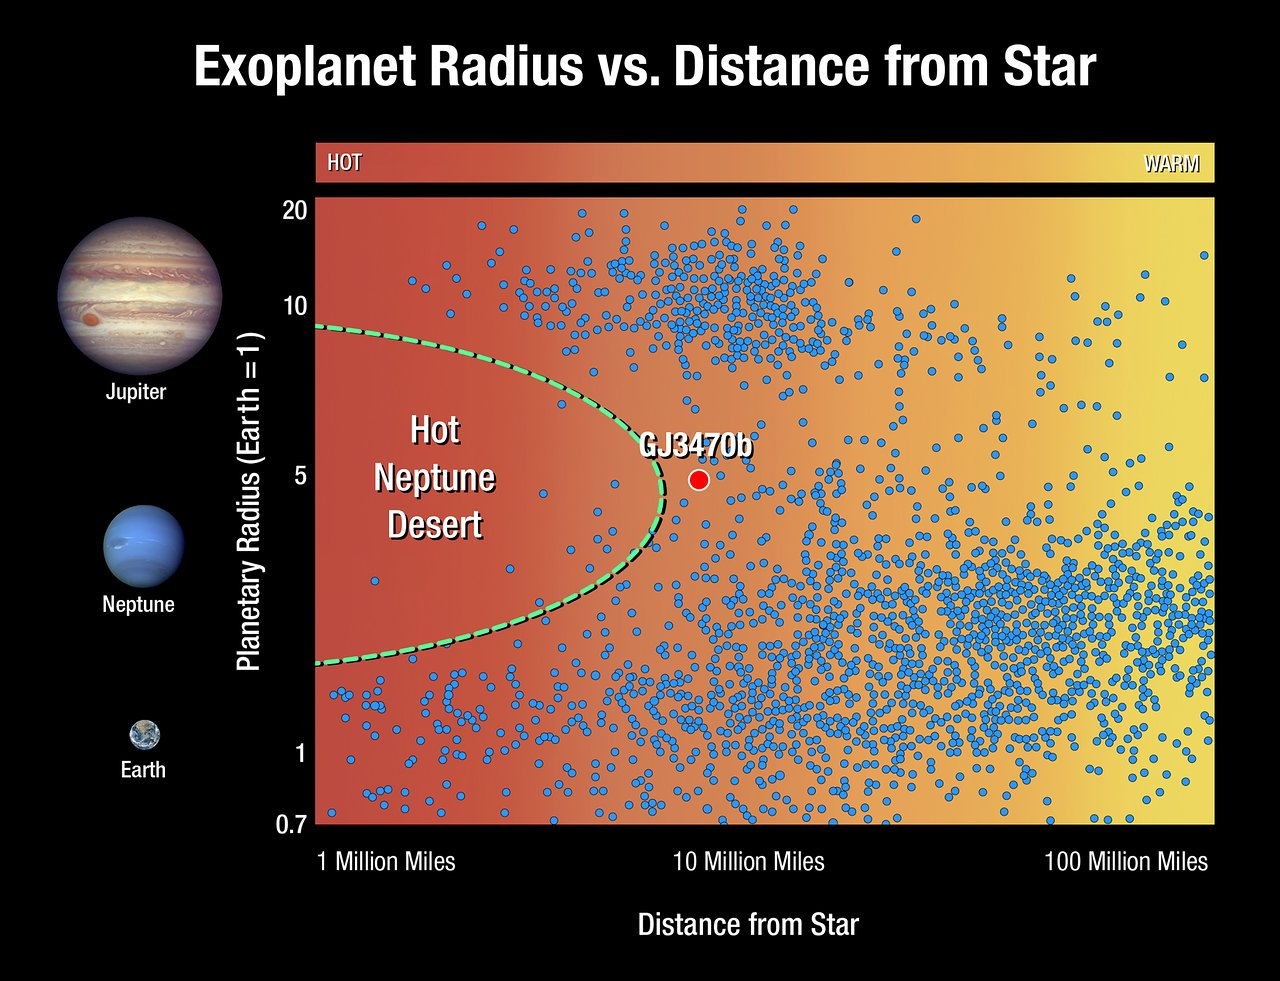 Exoplanet radius versus distance from star